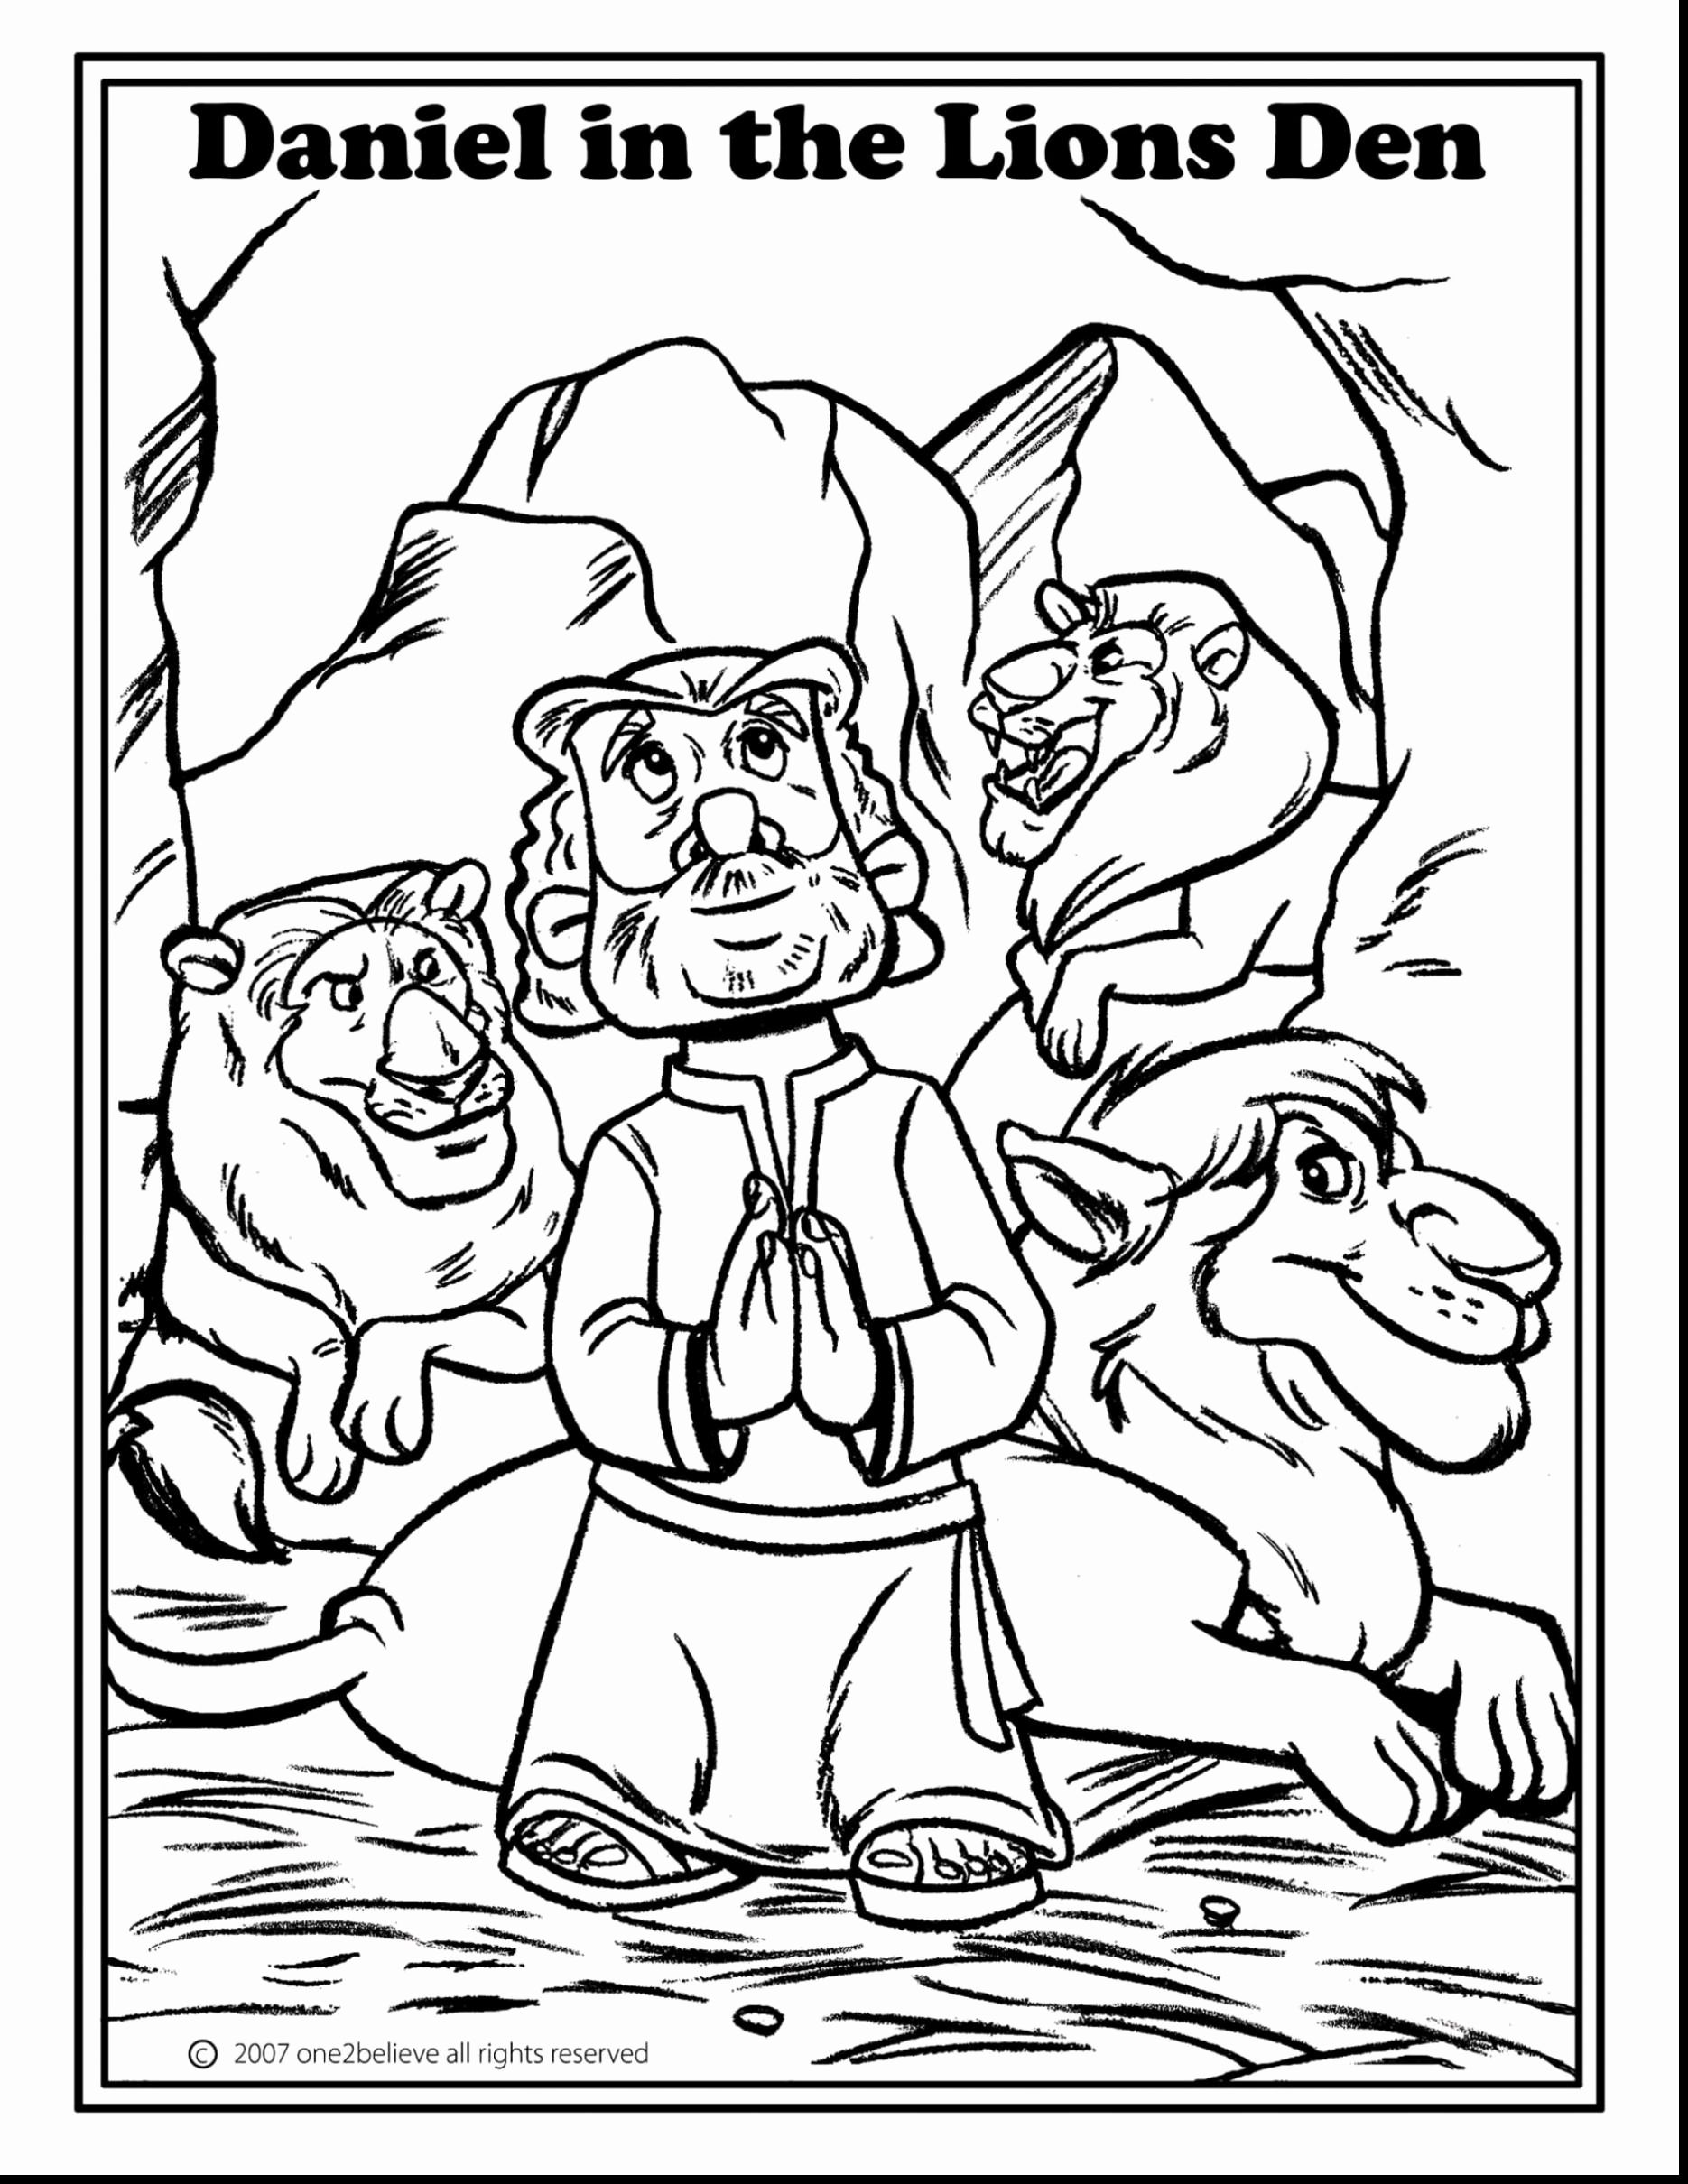 Coloring Pages For Kids Bible Zacheus Bible Coloring Pages Bible Verse Coloring Bible Verse Coloring Page